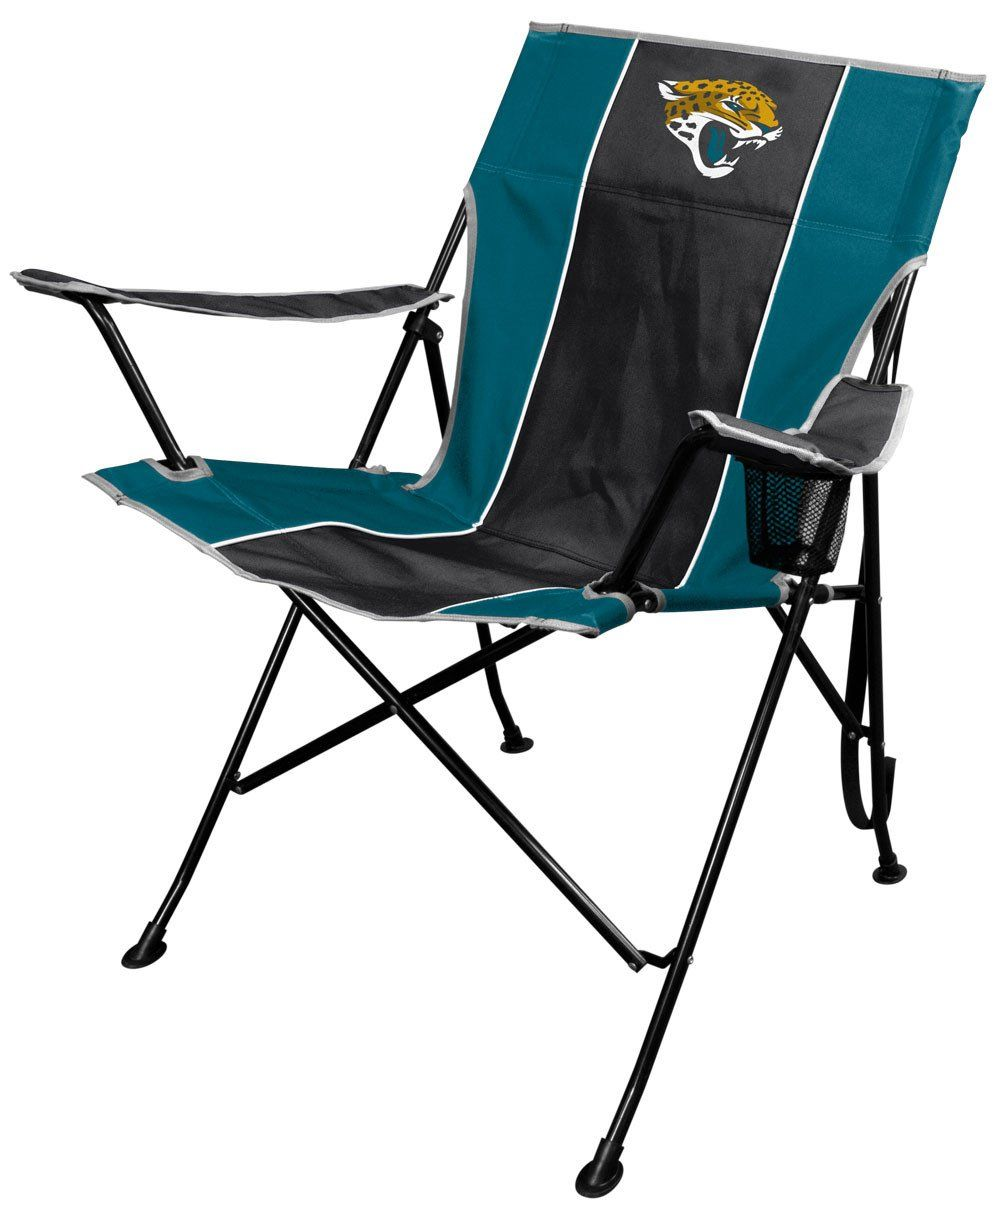 jacksonville jaguars tailgate chair products tailgate chairs rh pinterest ie